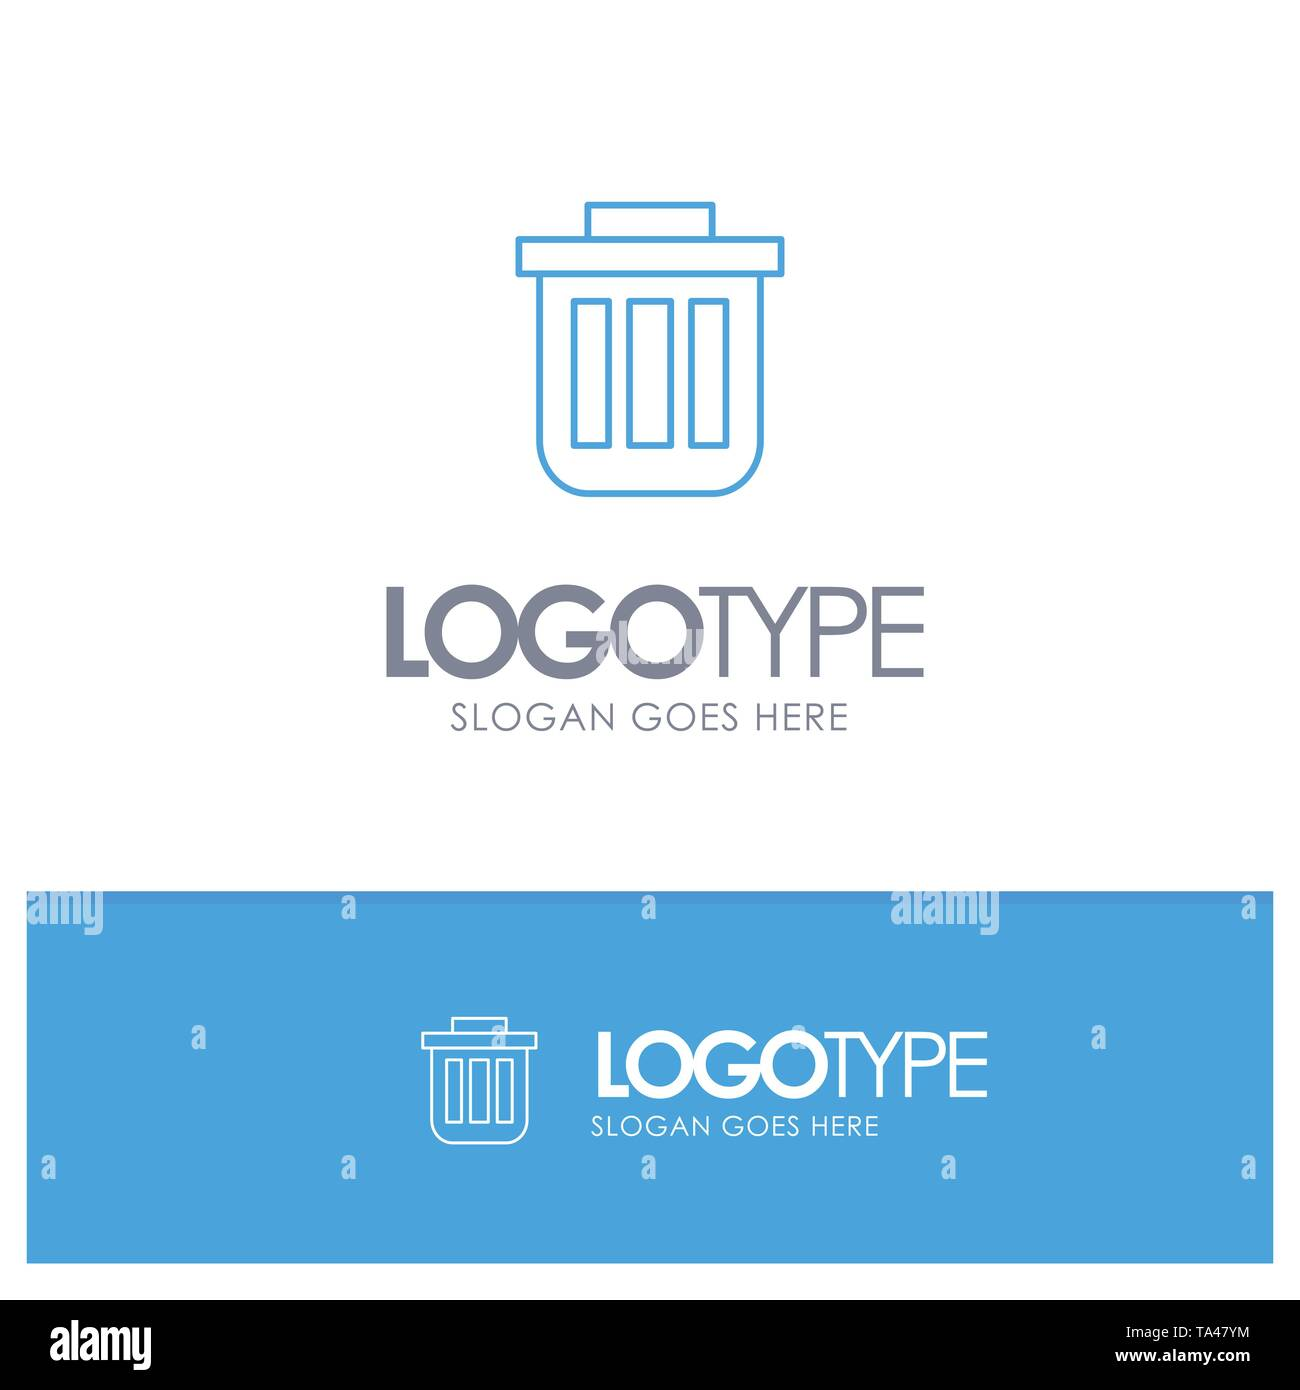 Trash, Basket, Bin, Can, Container, Dustbin, Office Blue outLine Logo with place for tagline - Stock Image